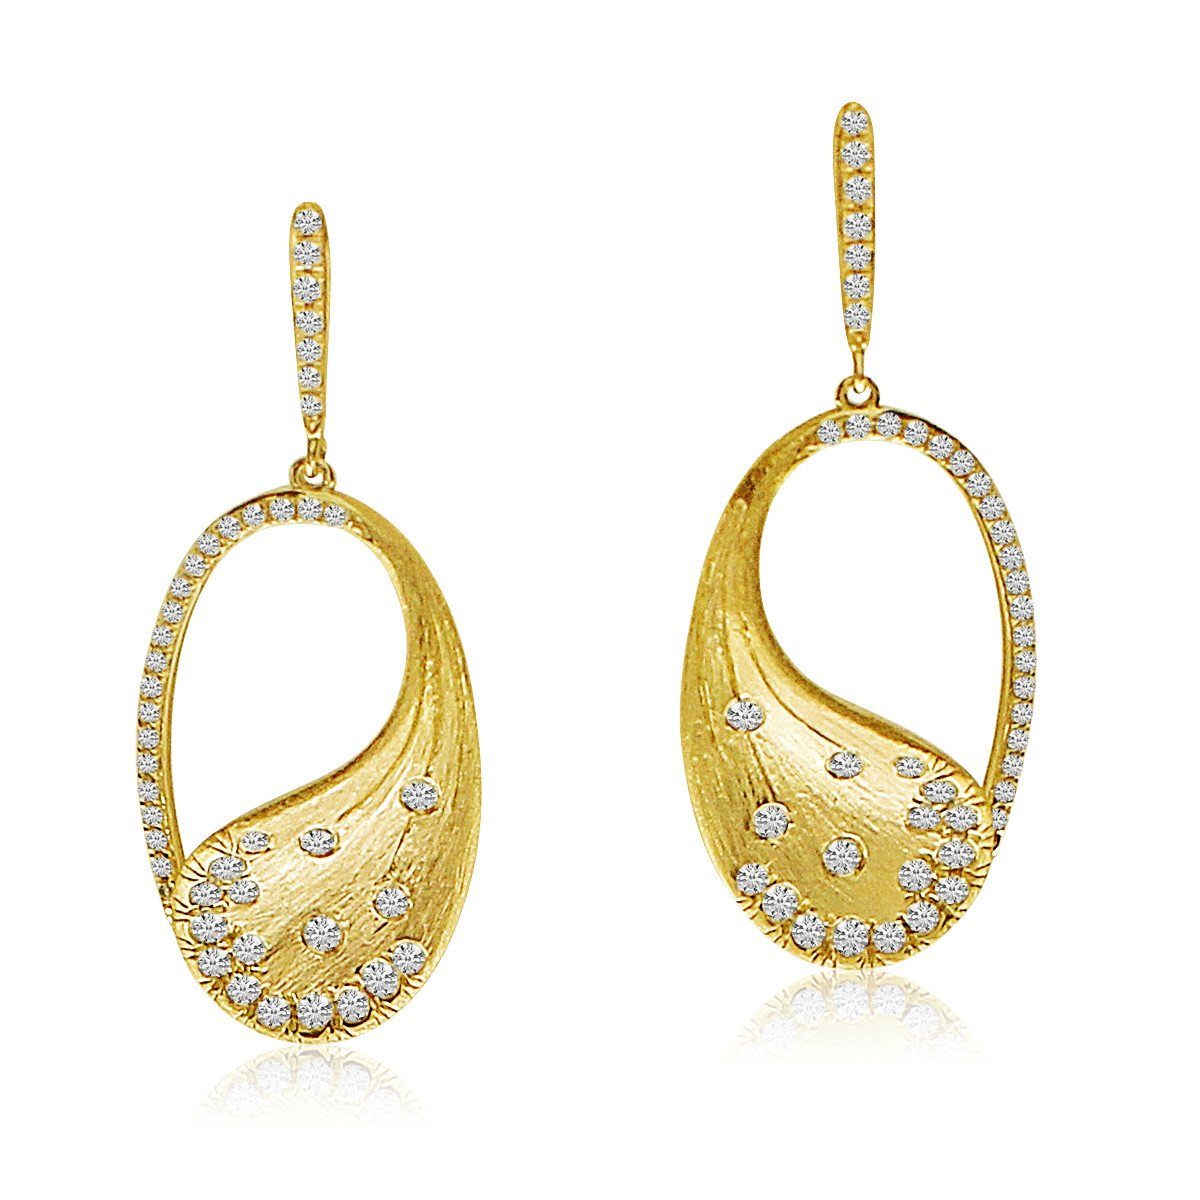 14K Yellow Brushed Gold Oval Diamond Fashion Earrings